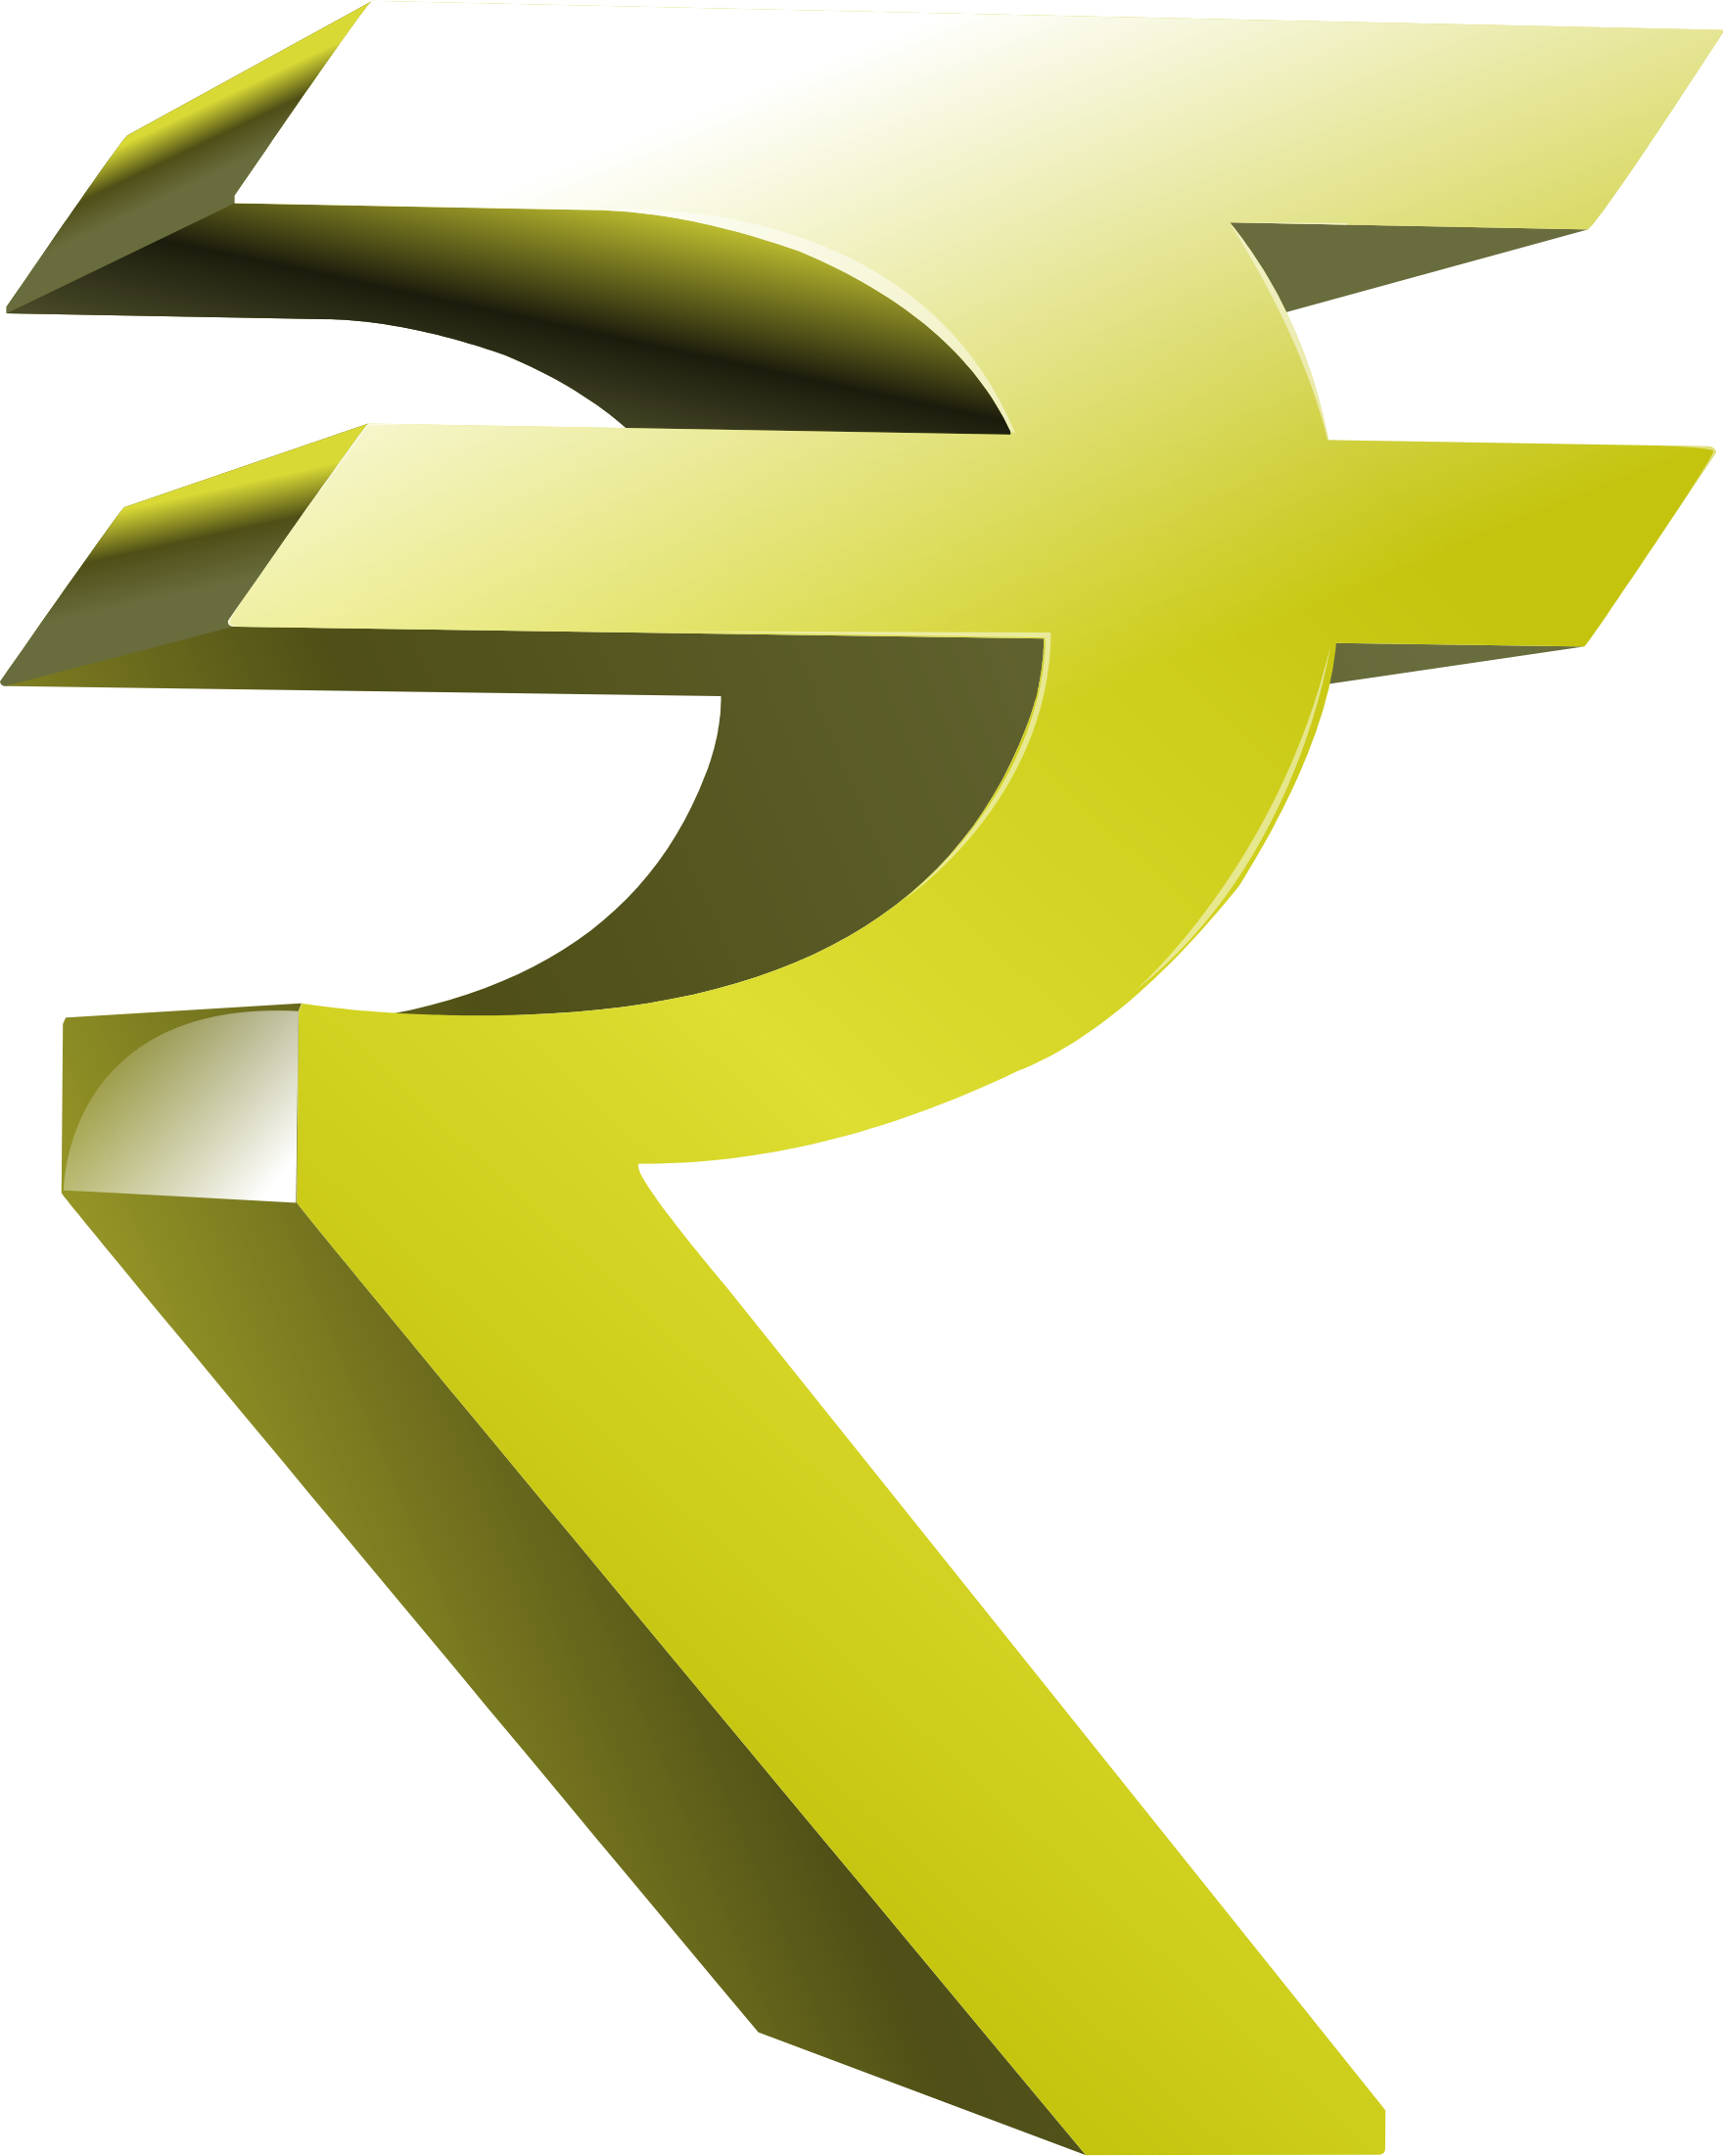 Download Rupee Symbol Transparent Hq Png Image Freepngimg